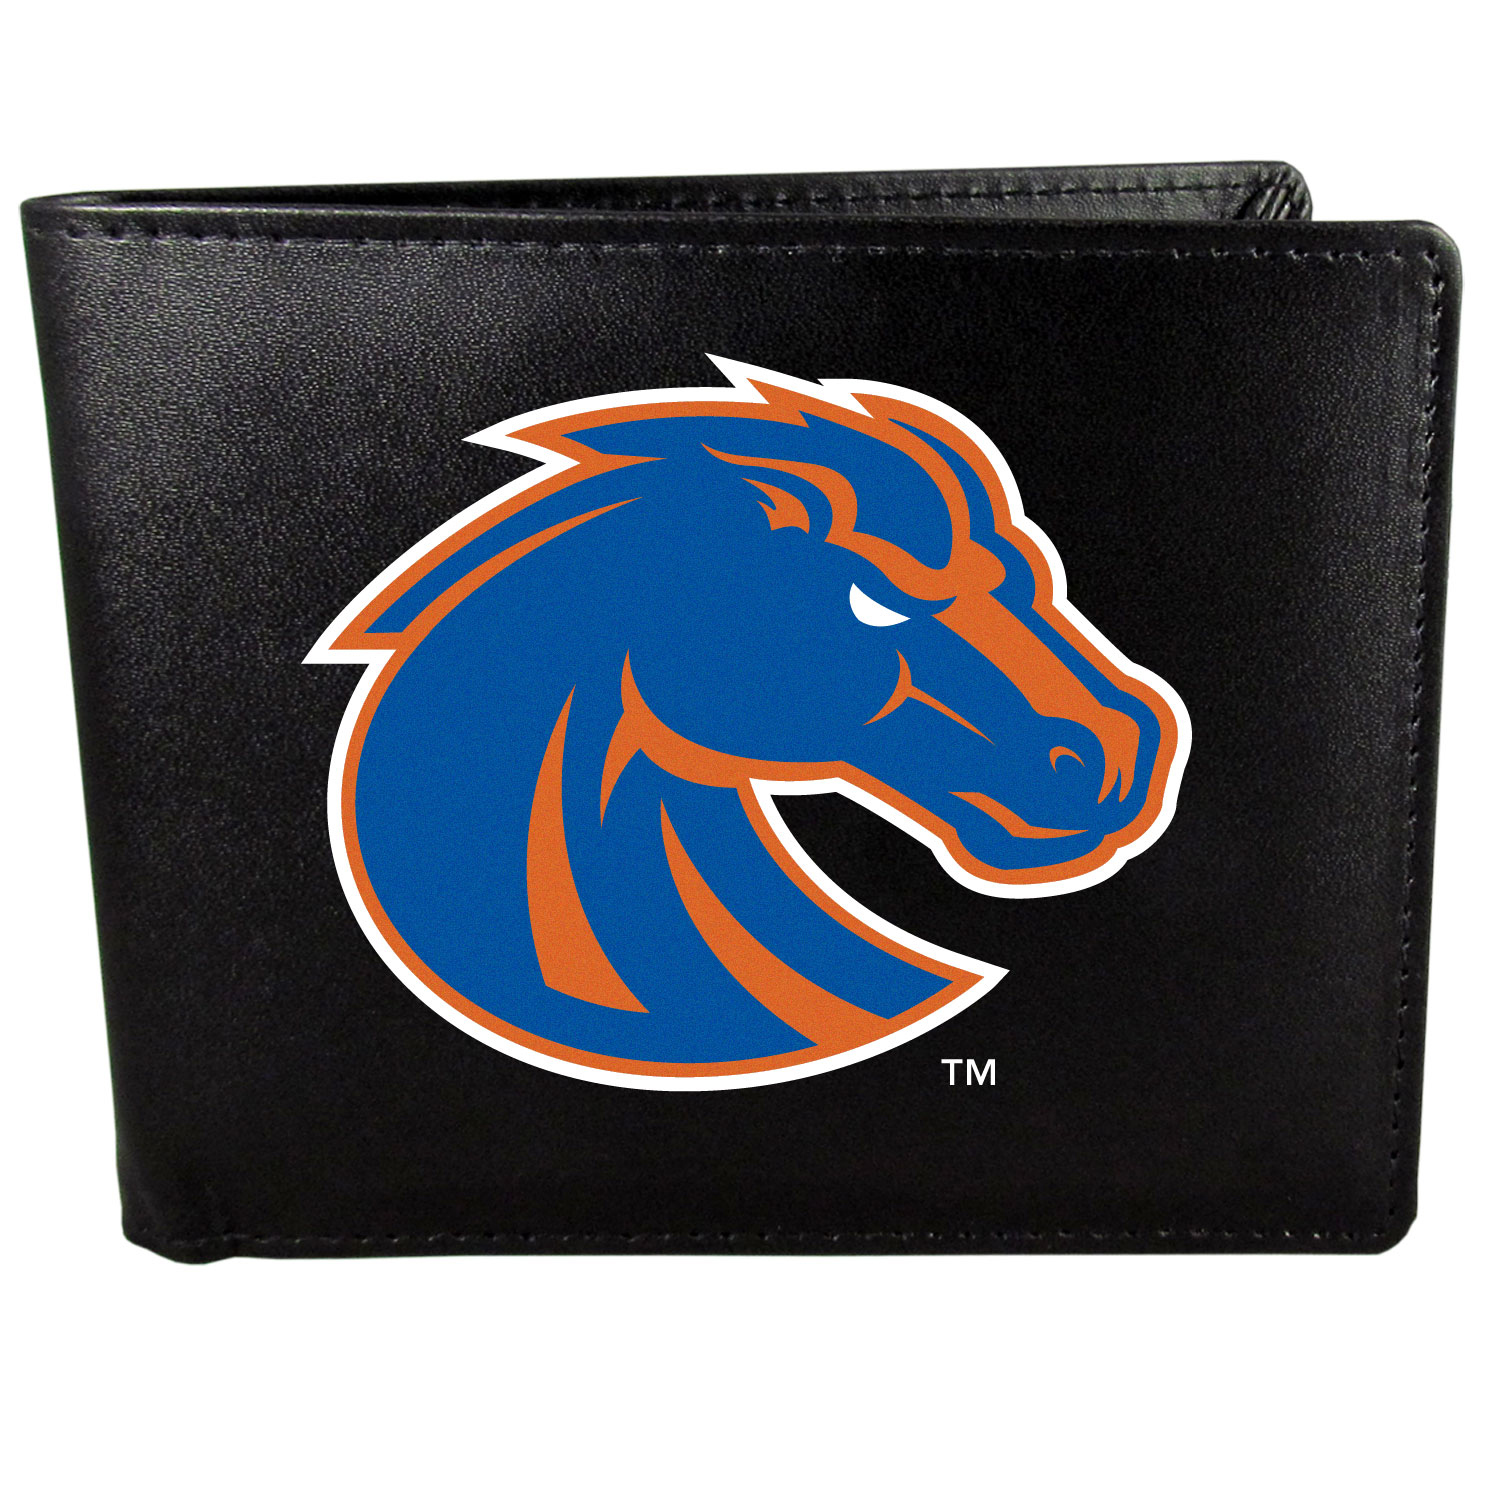 Boise St. Broncos Leather Bi-fold Wallet, Large Logo - Our classic fine leather bi-fold wallet is meticulously crafted with genuine leather that will age beautifully so you will have a quality wallet for years to come. The wallet opens to a large, billfold pocket and numerous credit card slots and has a convenient windowed ID slot. The front of the wallet features an extra large Boise St. Broncos printed logo.